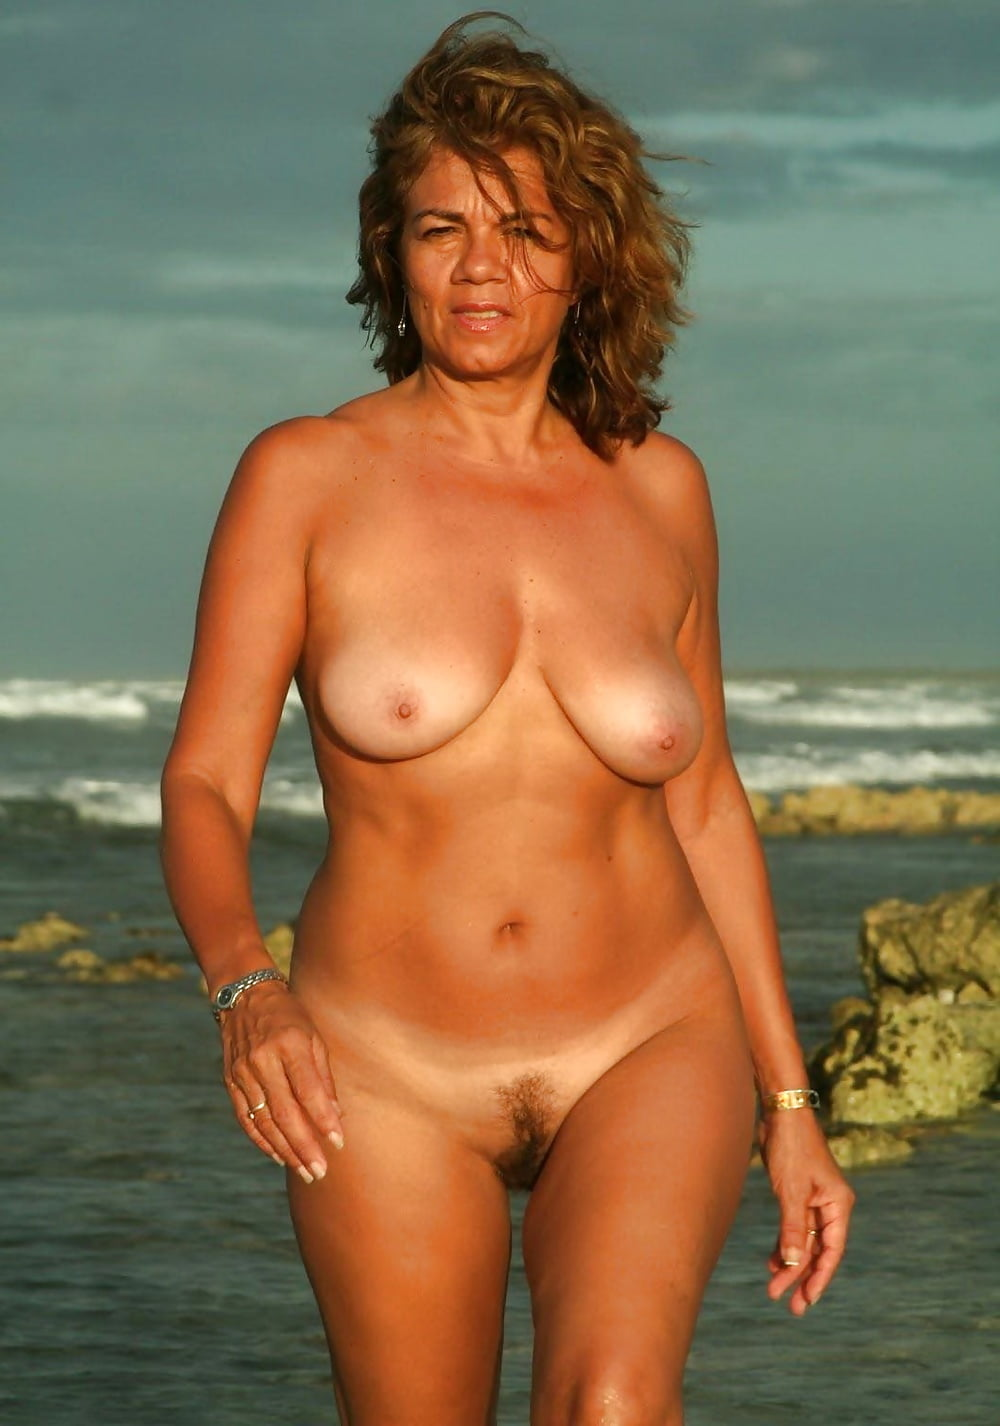 Real amateur mature wives exposed naked